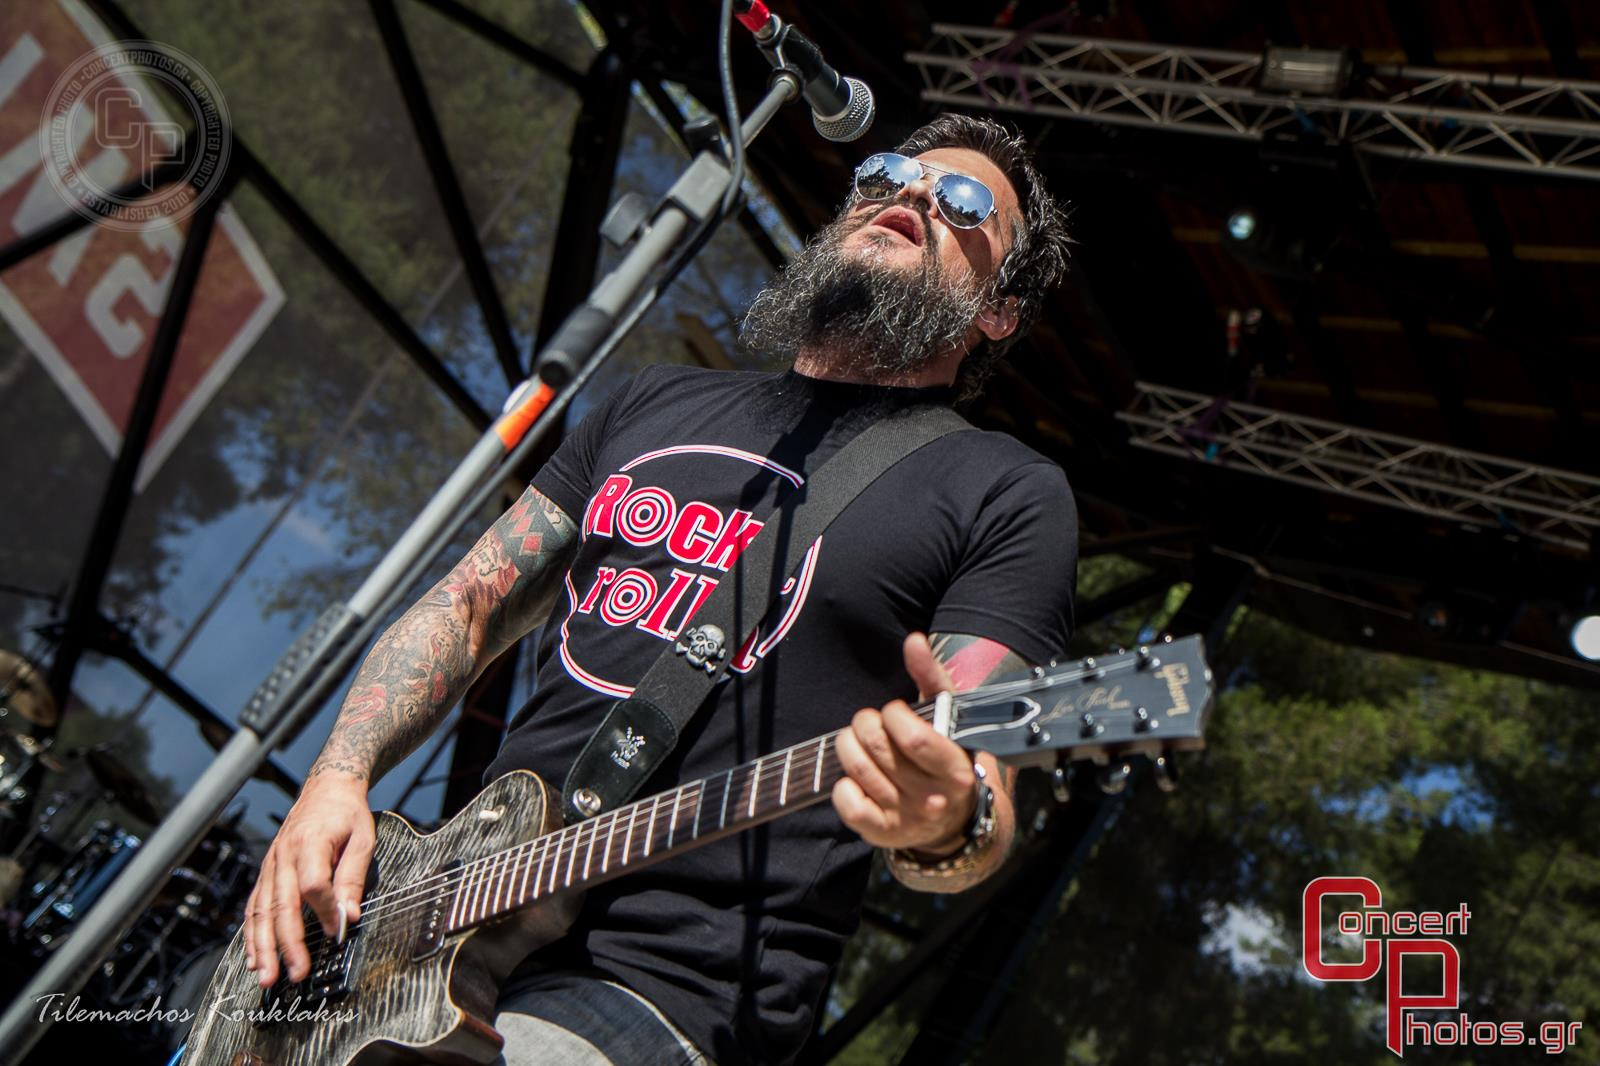 Rockwave 2014-Rockwave 2014 - Day 1 photographer:  - Rockwave-2014-2